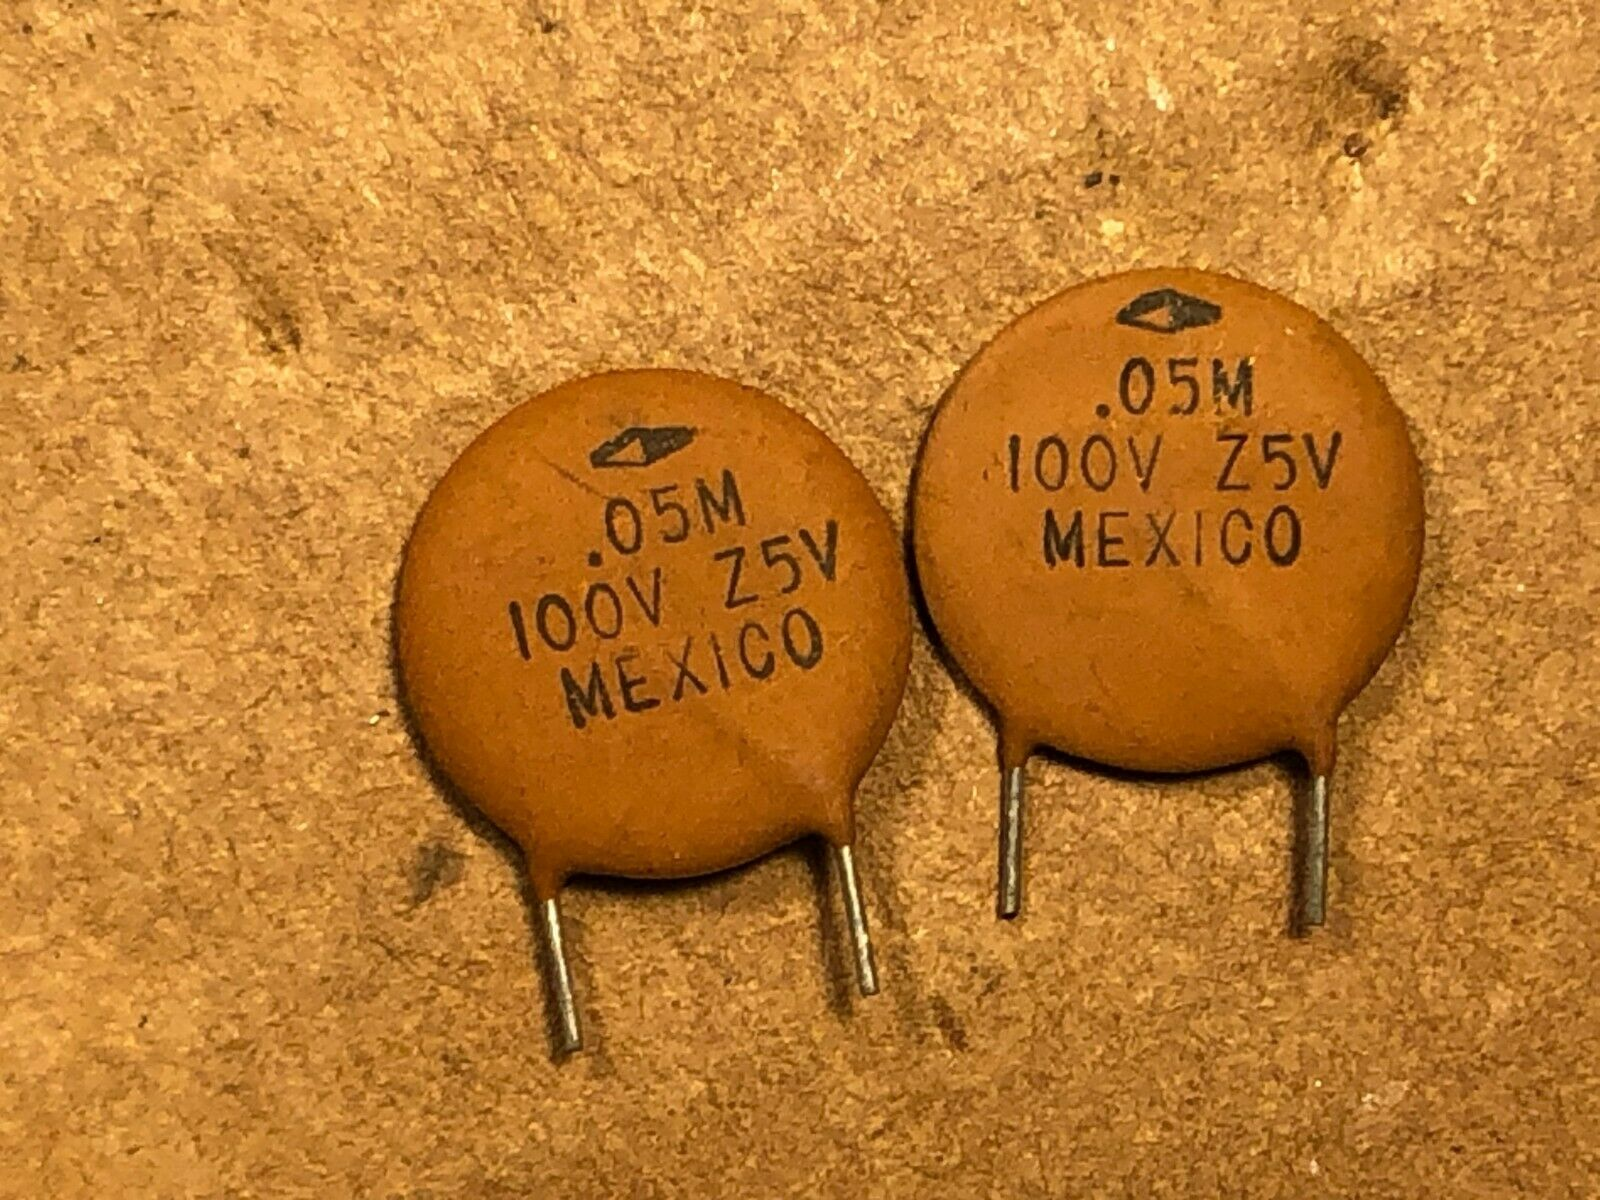 Qty NOS Vintage .005 uf 600v GREENIE Guitar Tone Capacitor Cornell Dubilier Cap